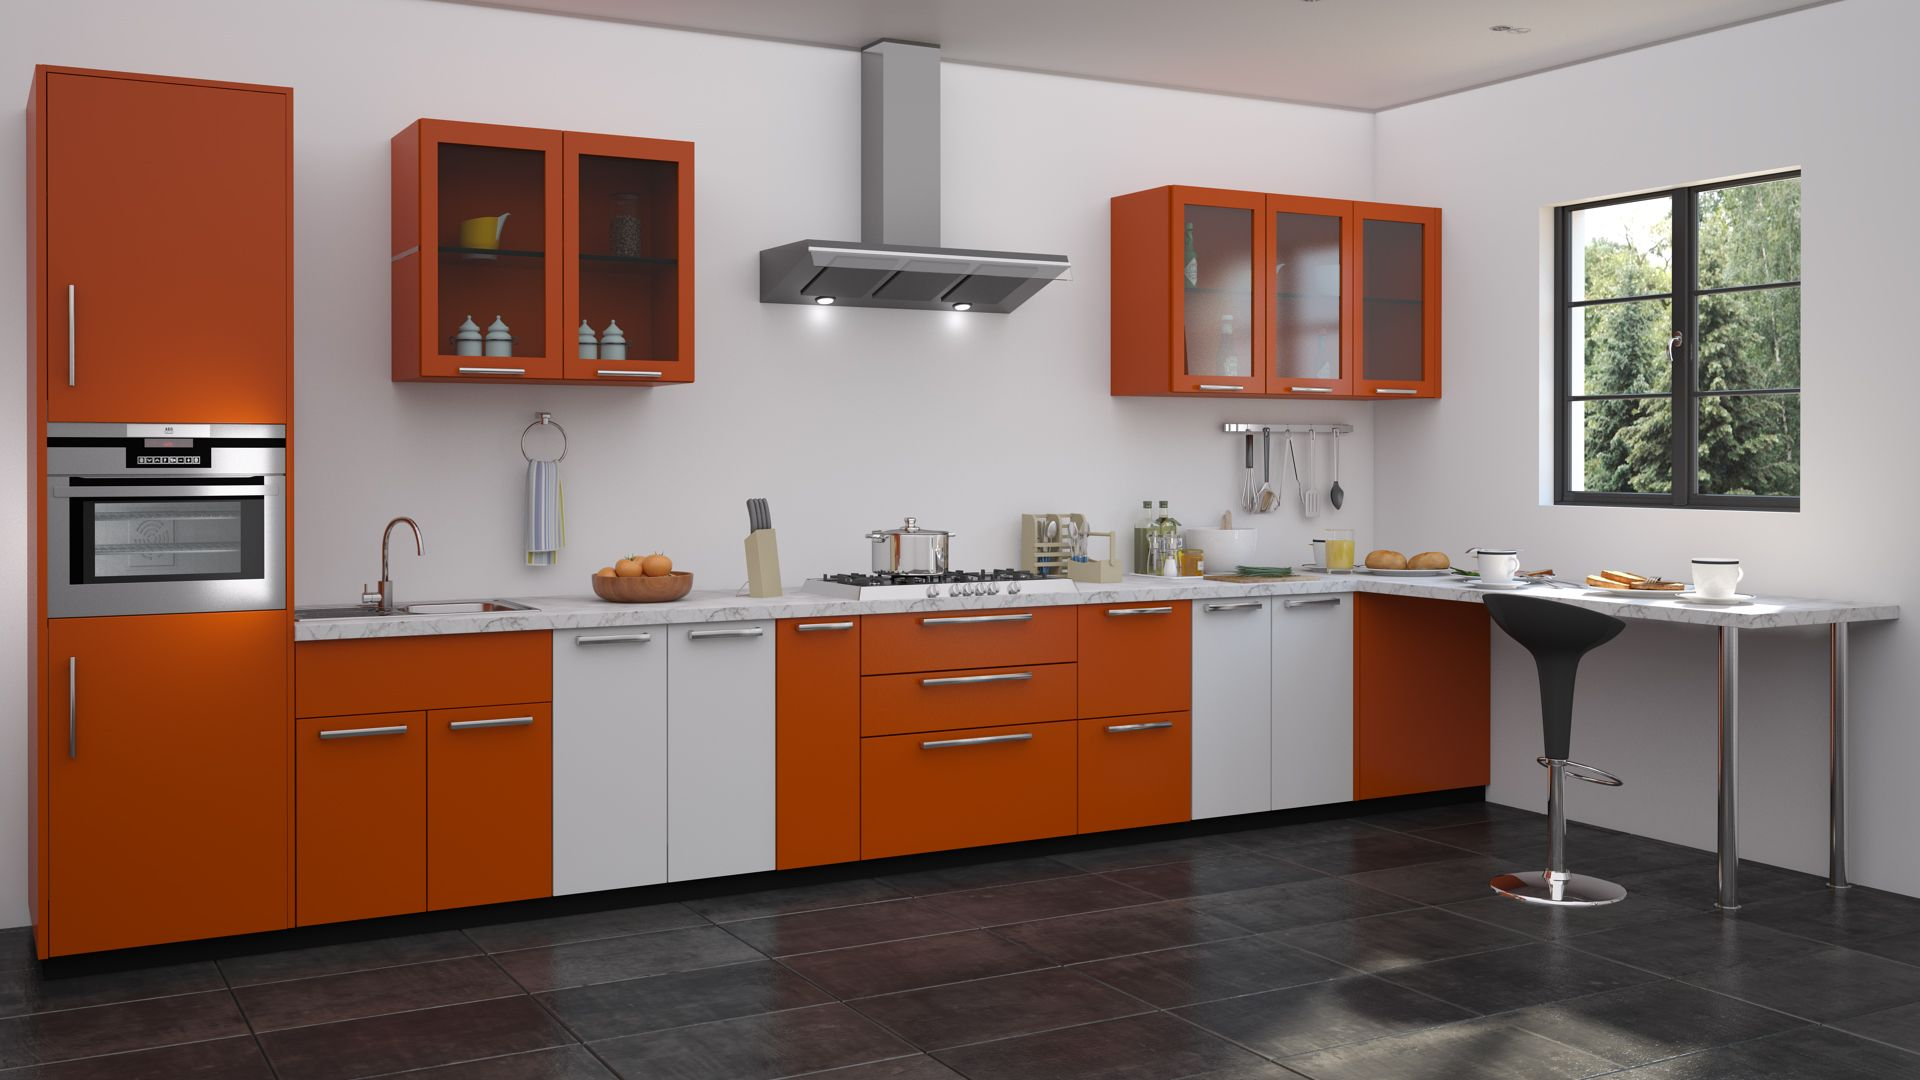 Orange modular kitchen design straight kitchen designs - Black red and white kitchen designs ...